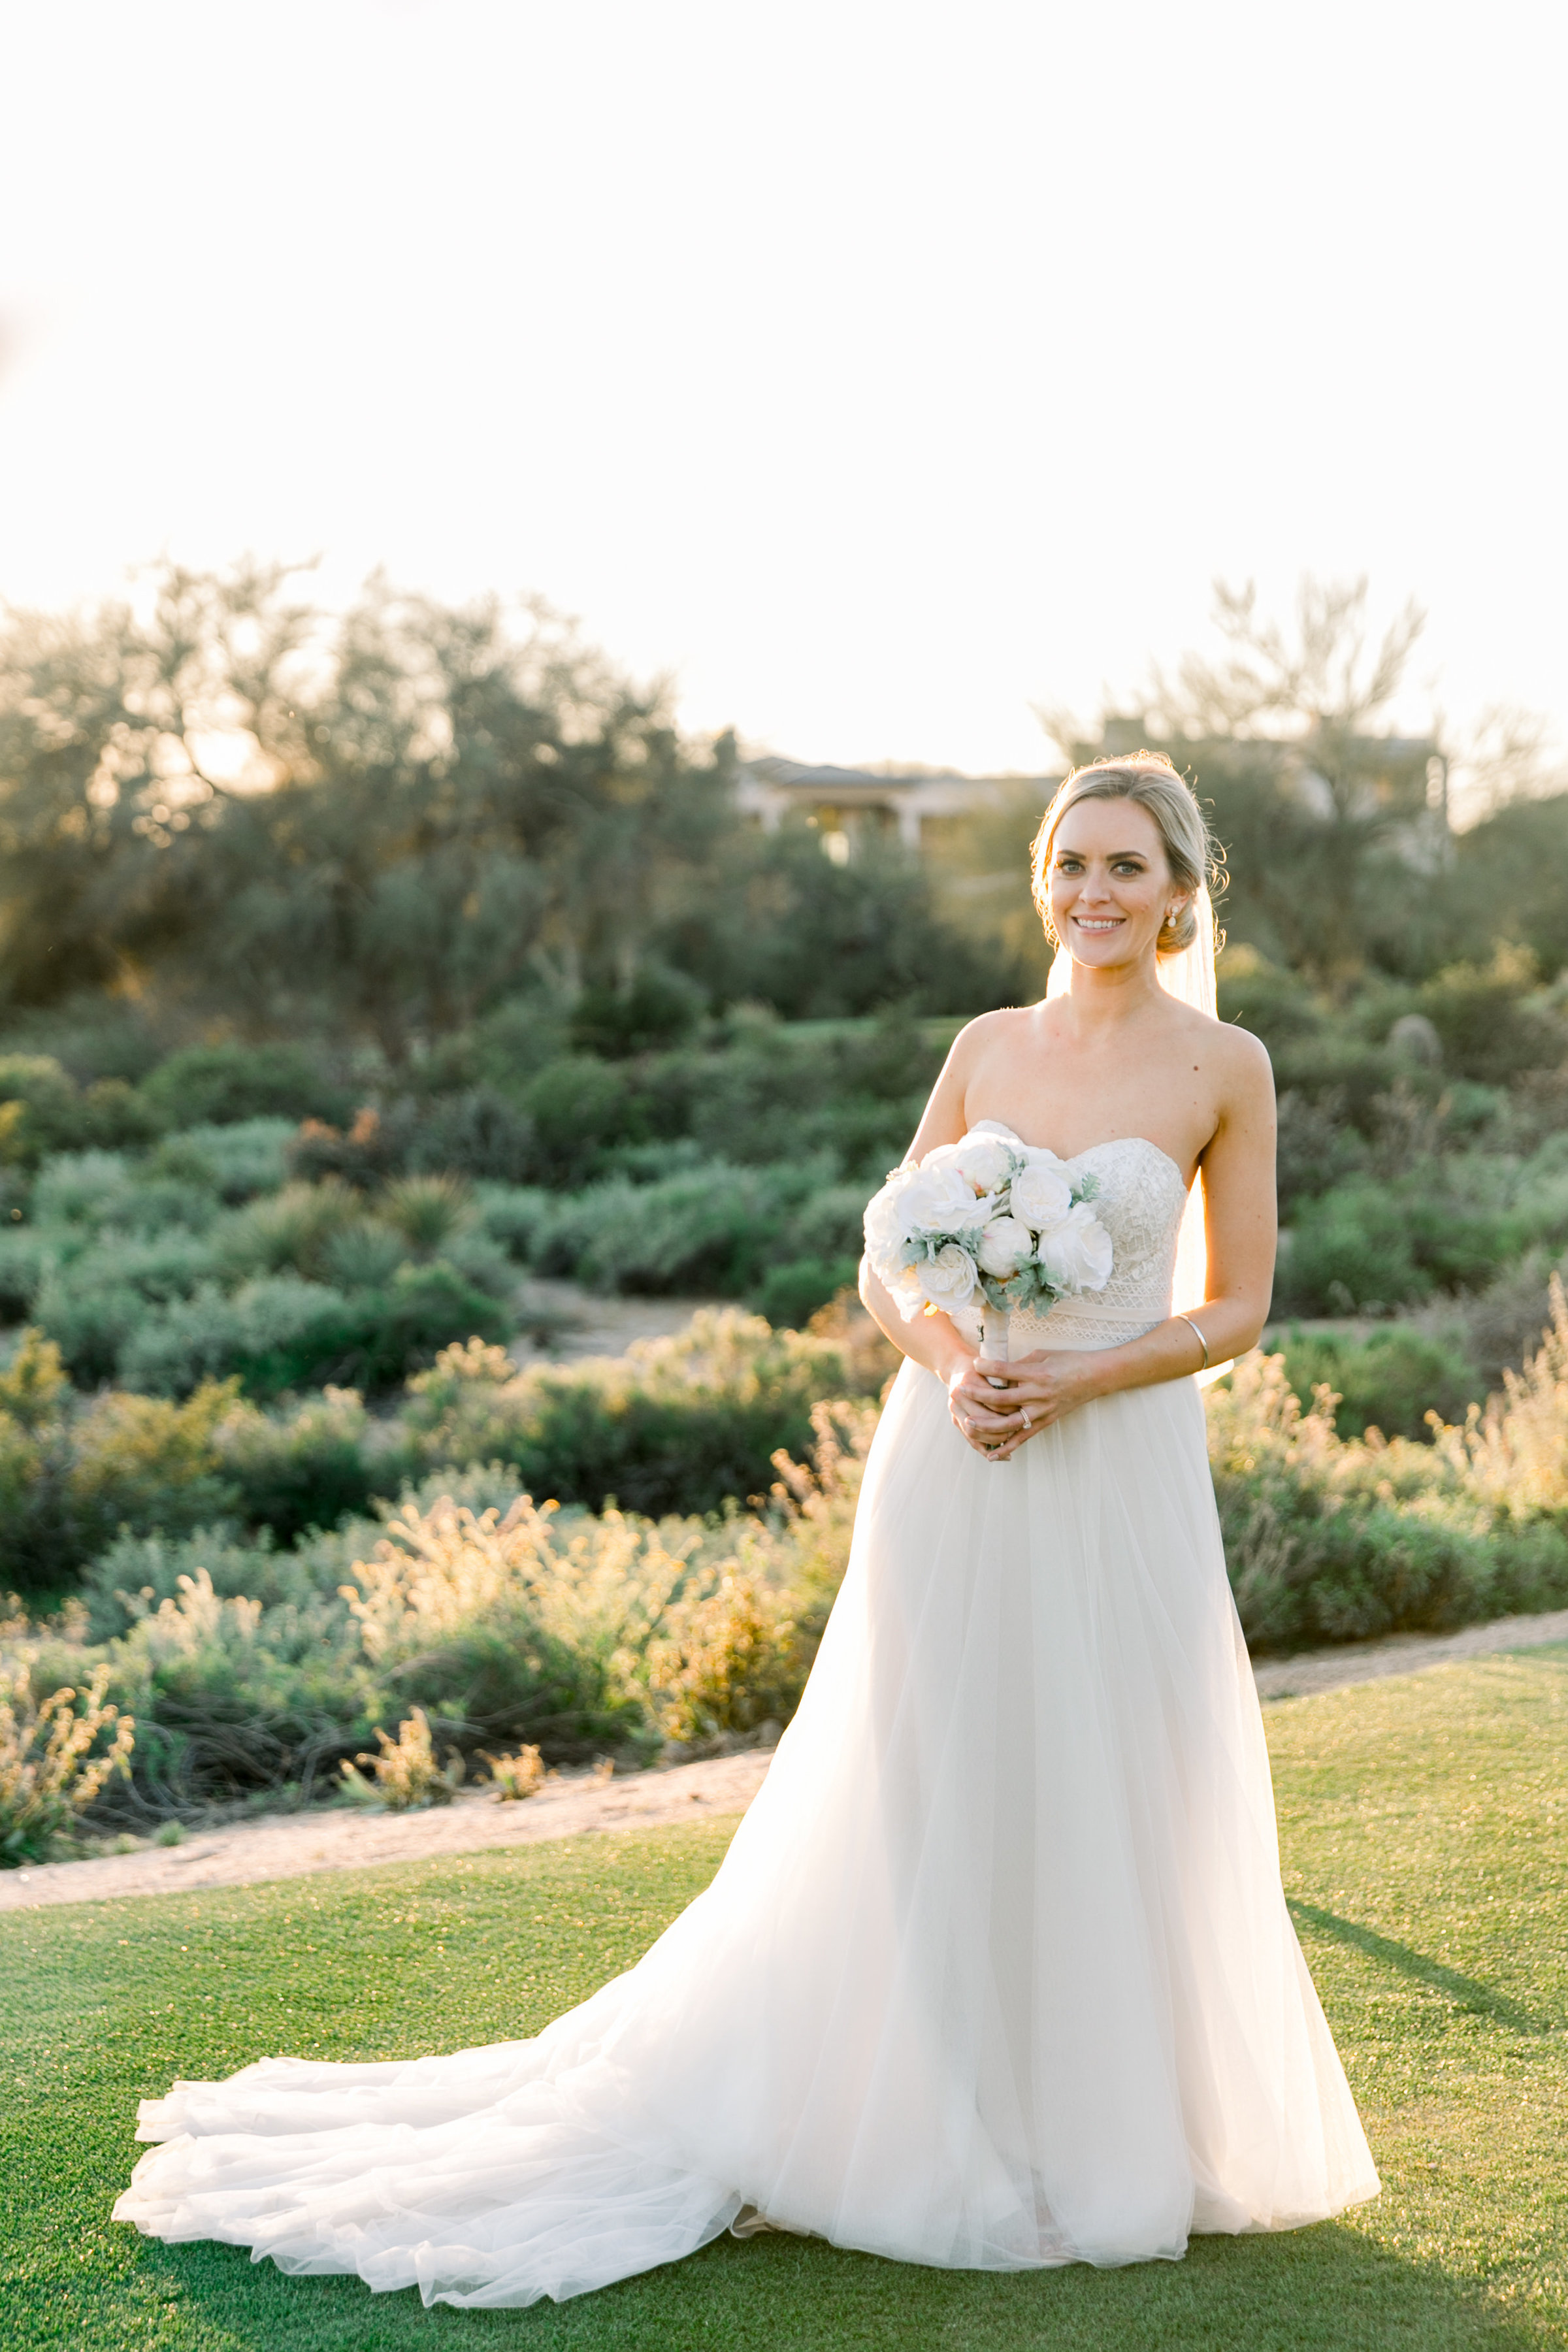 Karlie Colleen Photography - Arizona Wedding at The Troon Scottsdale Country Club - Paige & Shane -662